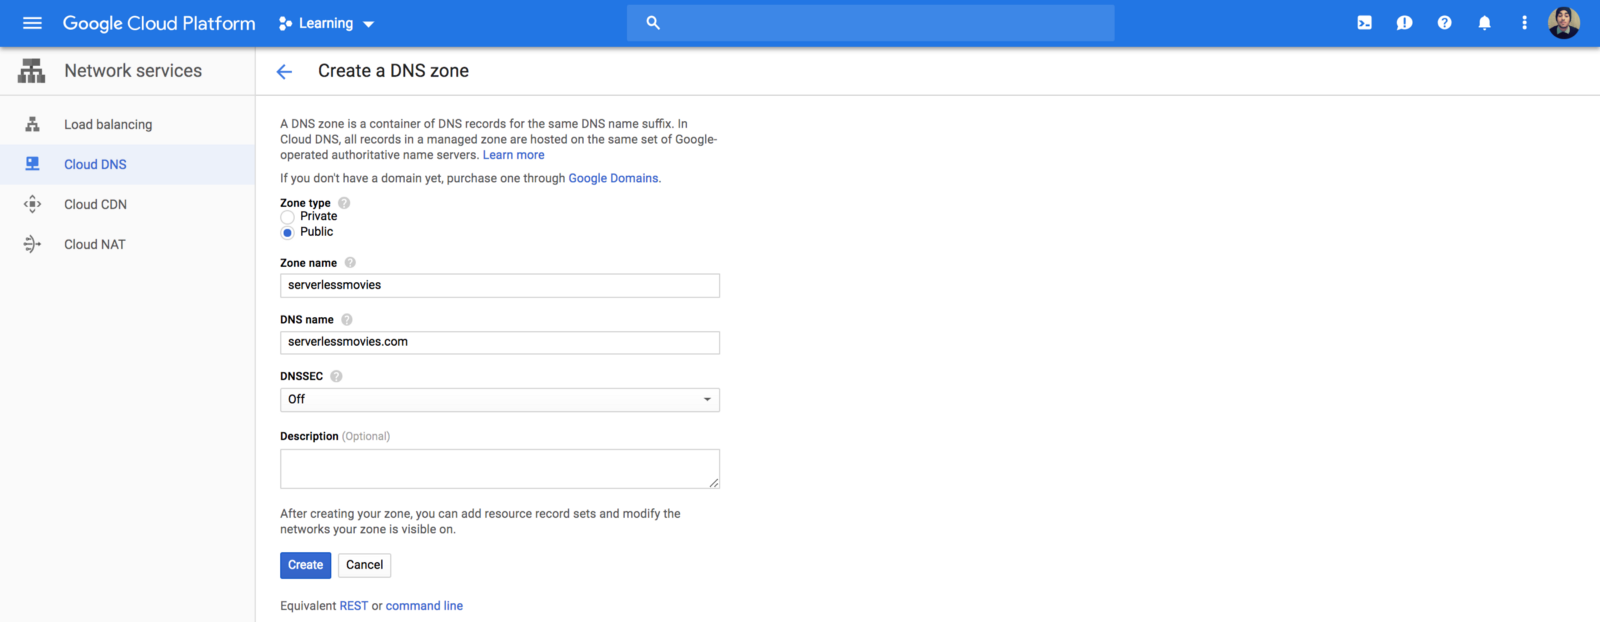 Hosting a Free Static Website on Google Cloud Storage - By